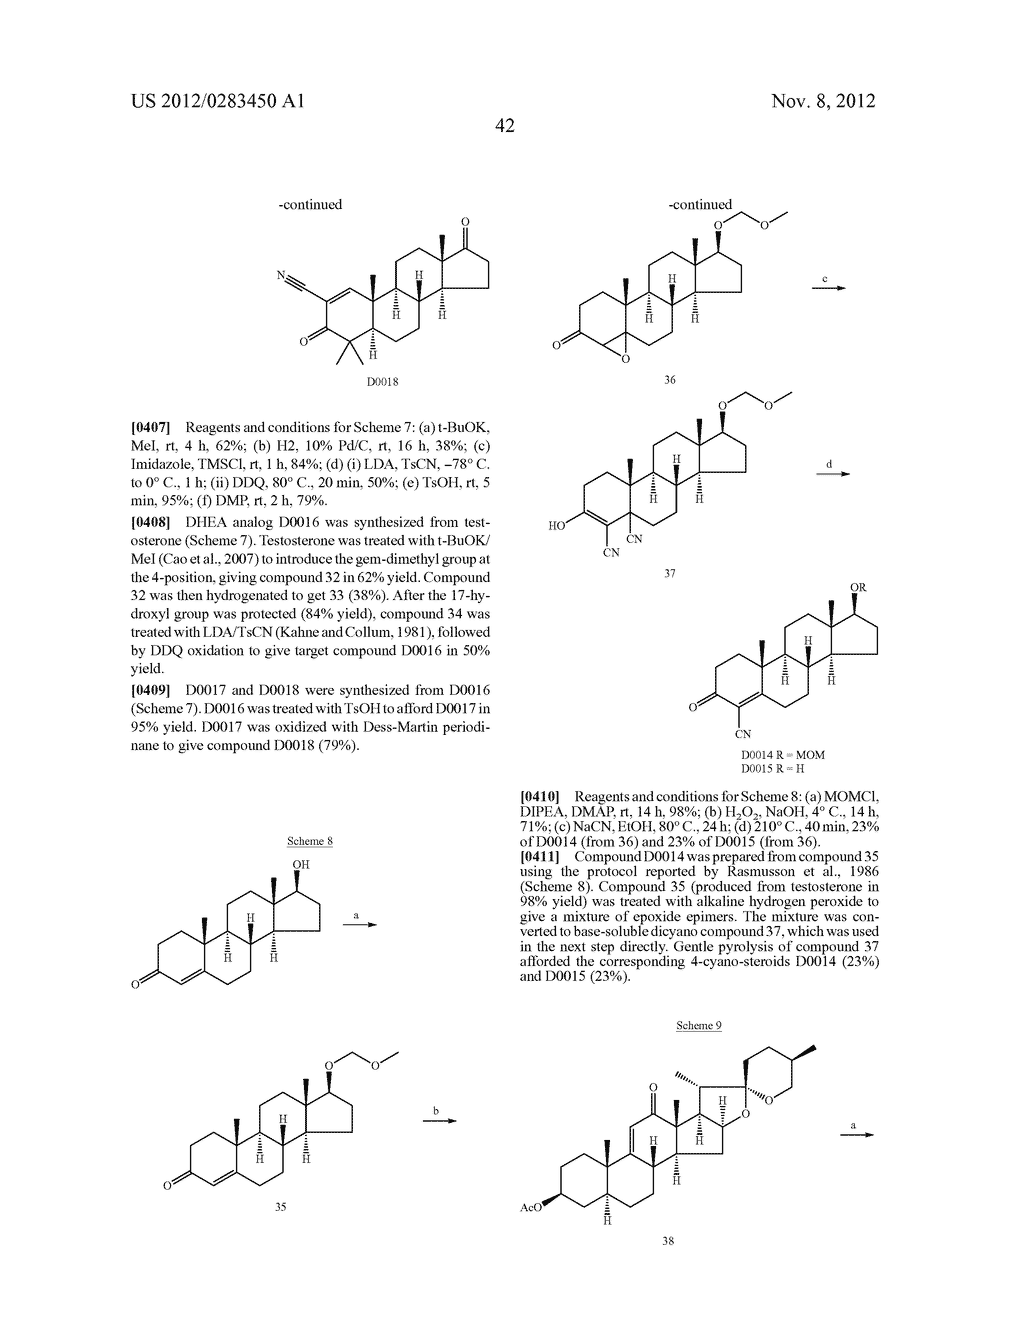 COMPOUNDS INCLUDING AN ANTI-INFLAMMATORY PHARMACORE AND METHODS OF USE - diagram, schematic, and image 67